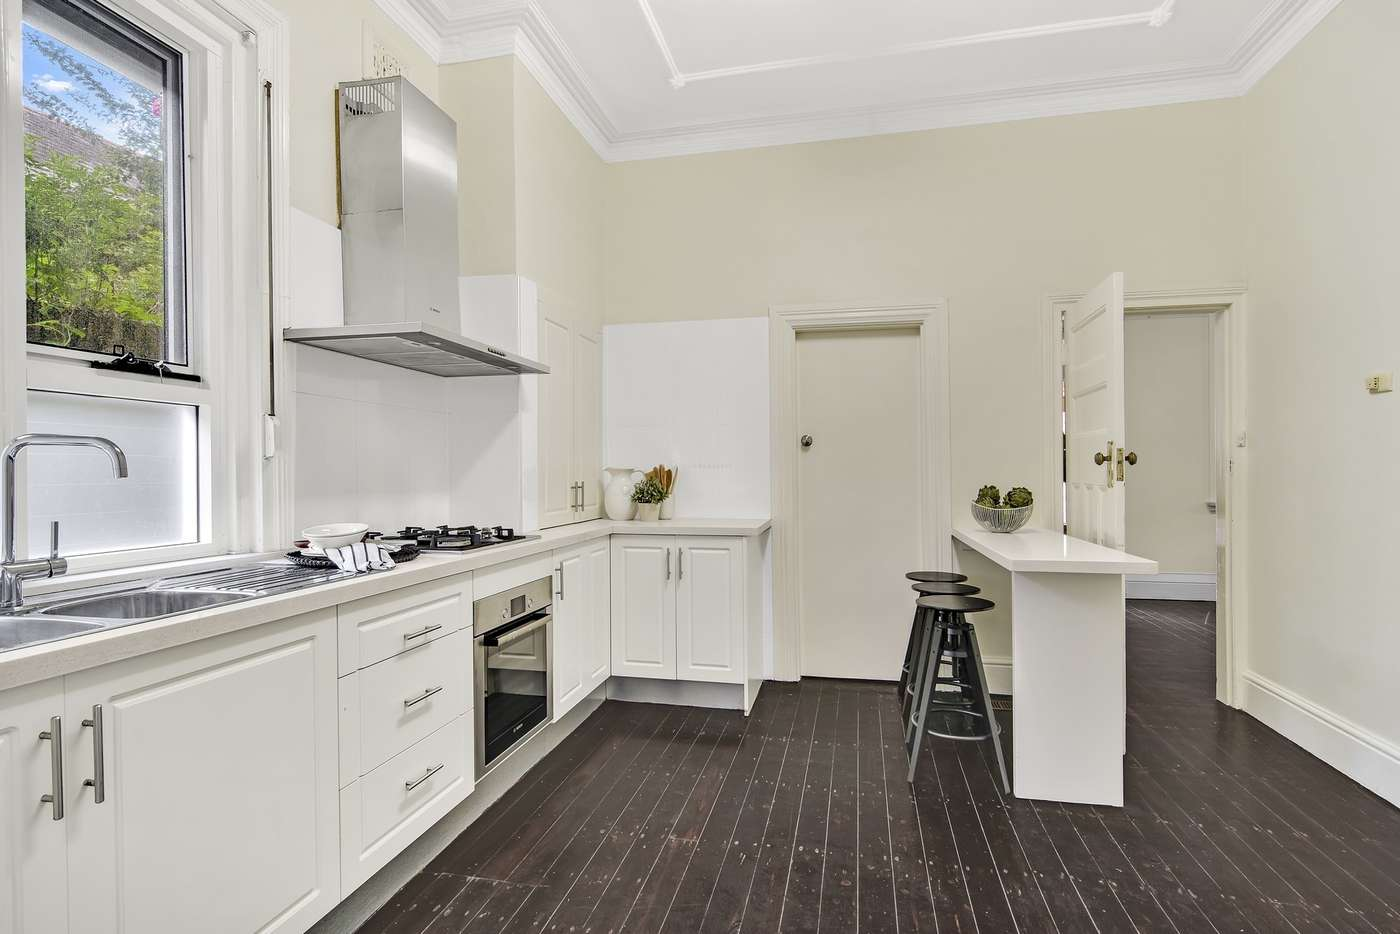 Seventh view of Homely house listing, 235 Mowbrary Road, Chatswood NSW 2067